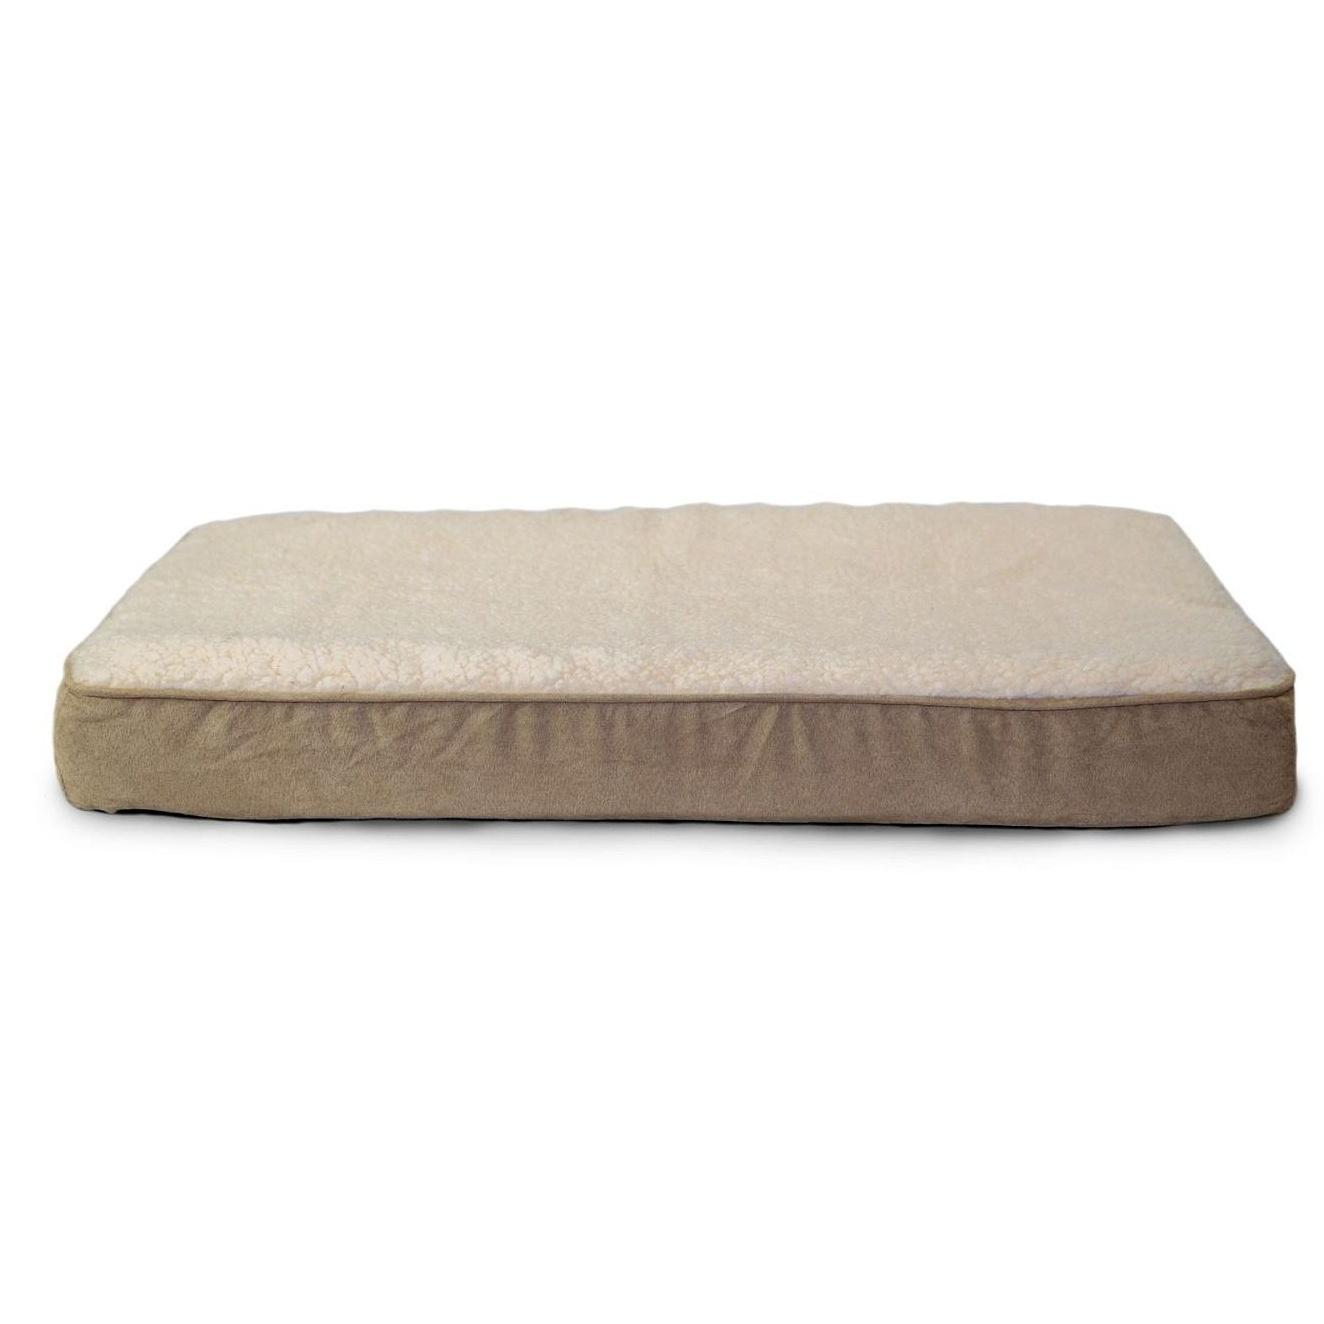 FurHaven Faux Sheepskin & Suede Deluxe Orthopedic Pet Bed - Clay